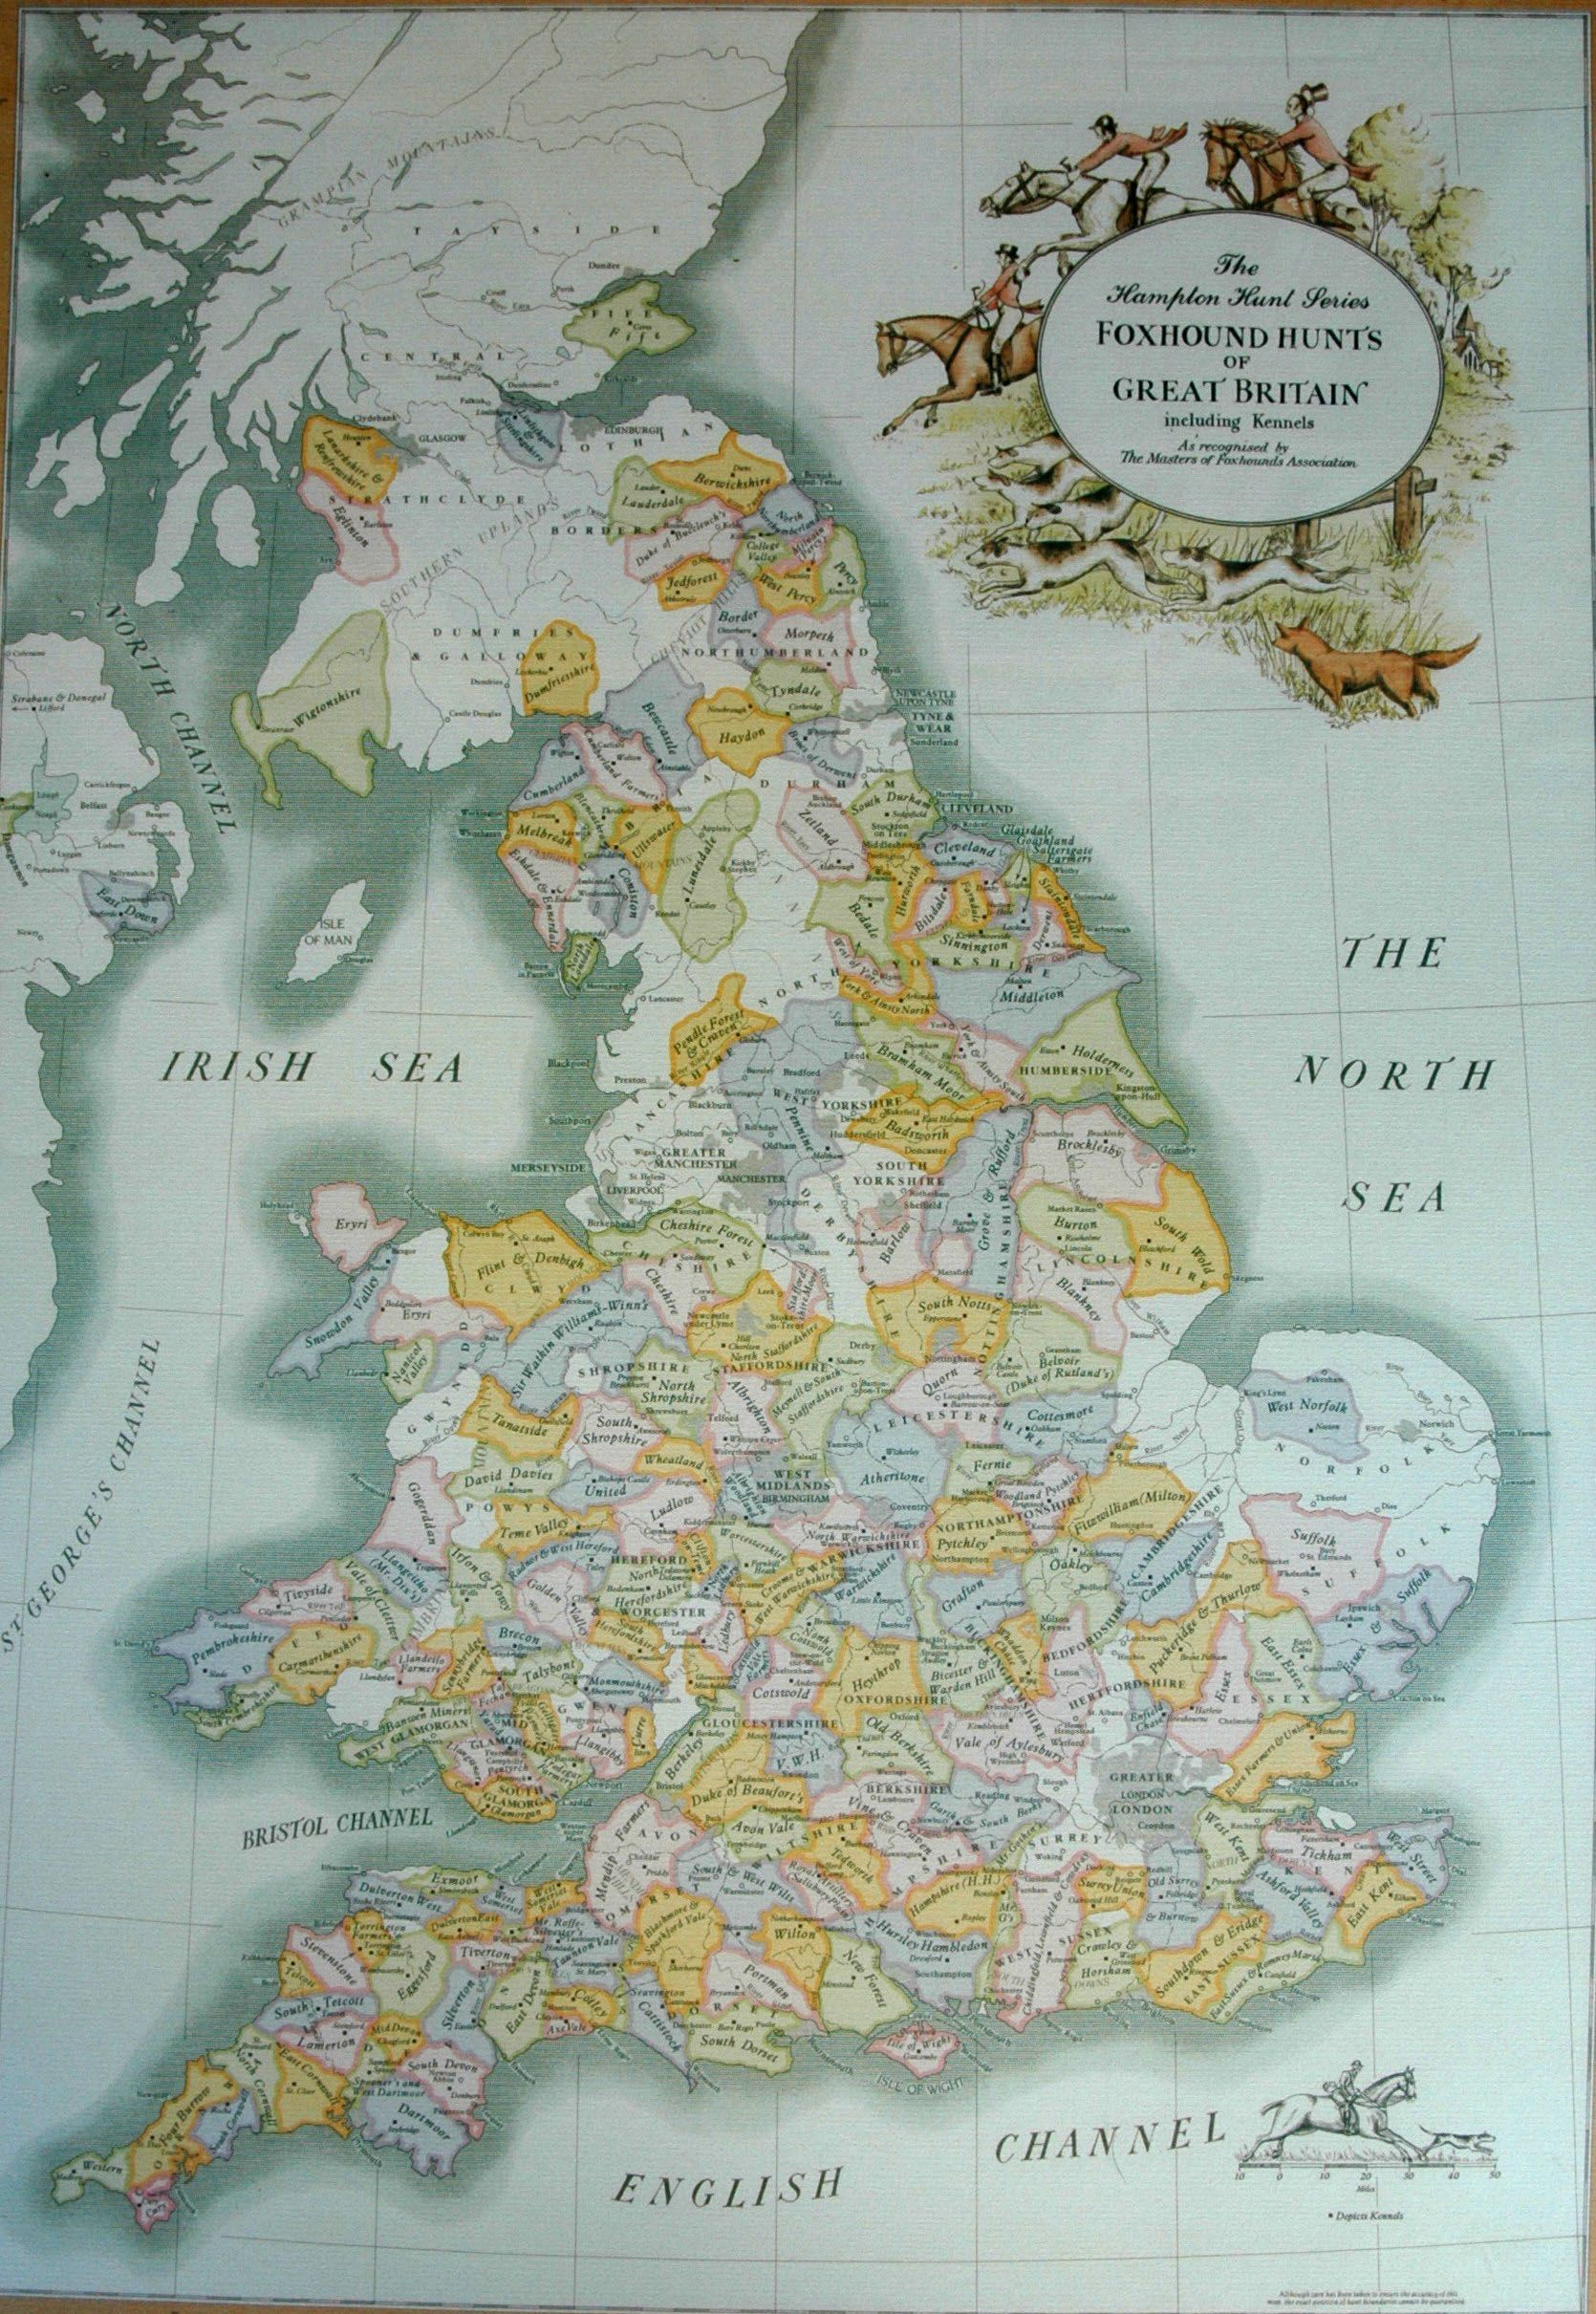 Foxhound hunts of Great Britain map Foxhound